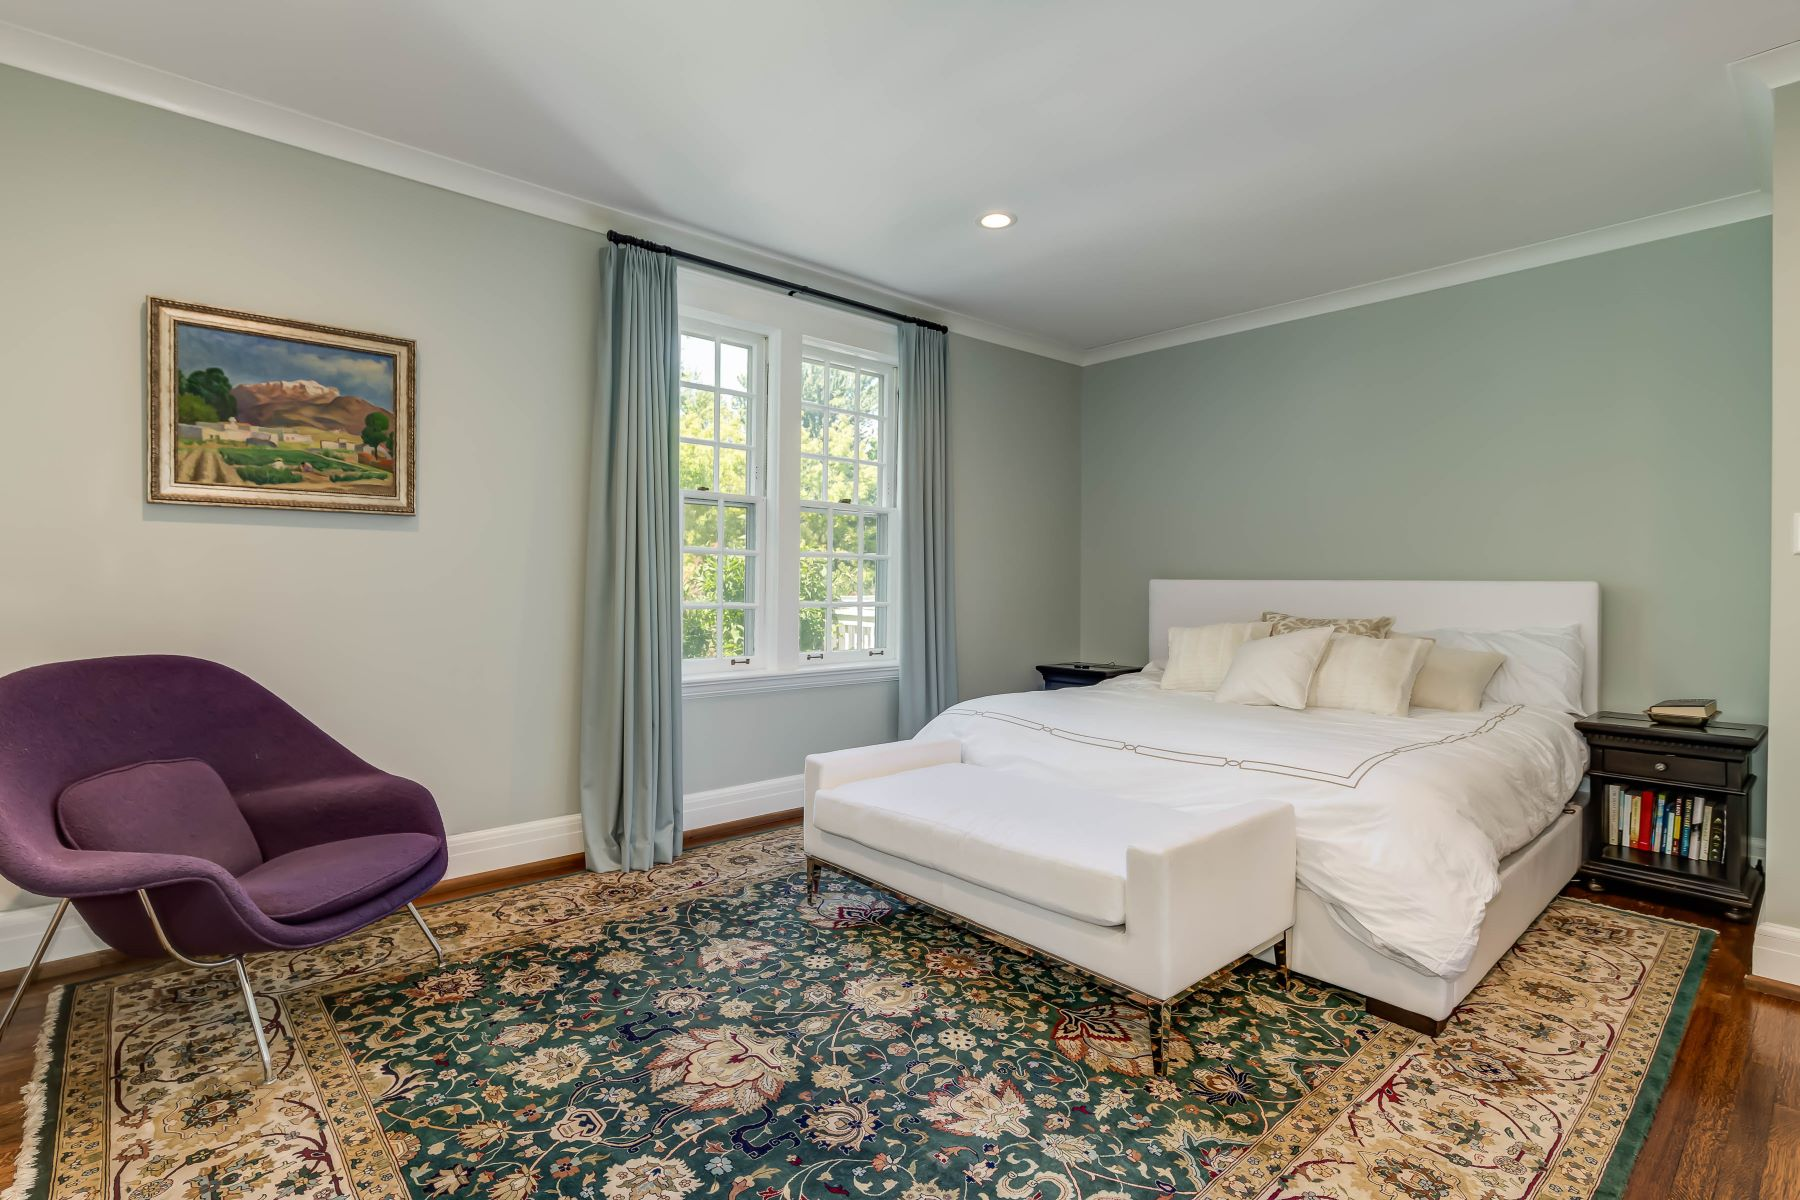 Additional photo for property listing at Gracious Historic Kirkwood Home 333 Dickson Street Kirkwood, Missouri 63122 United States